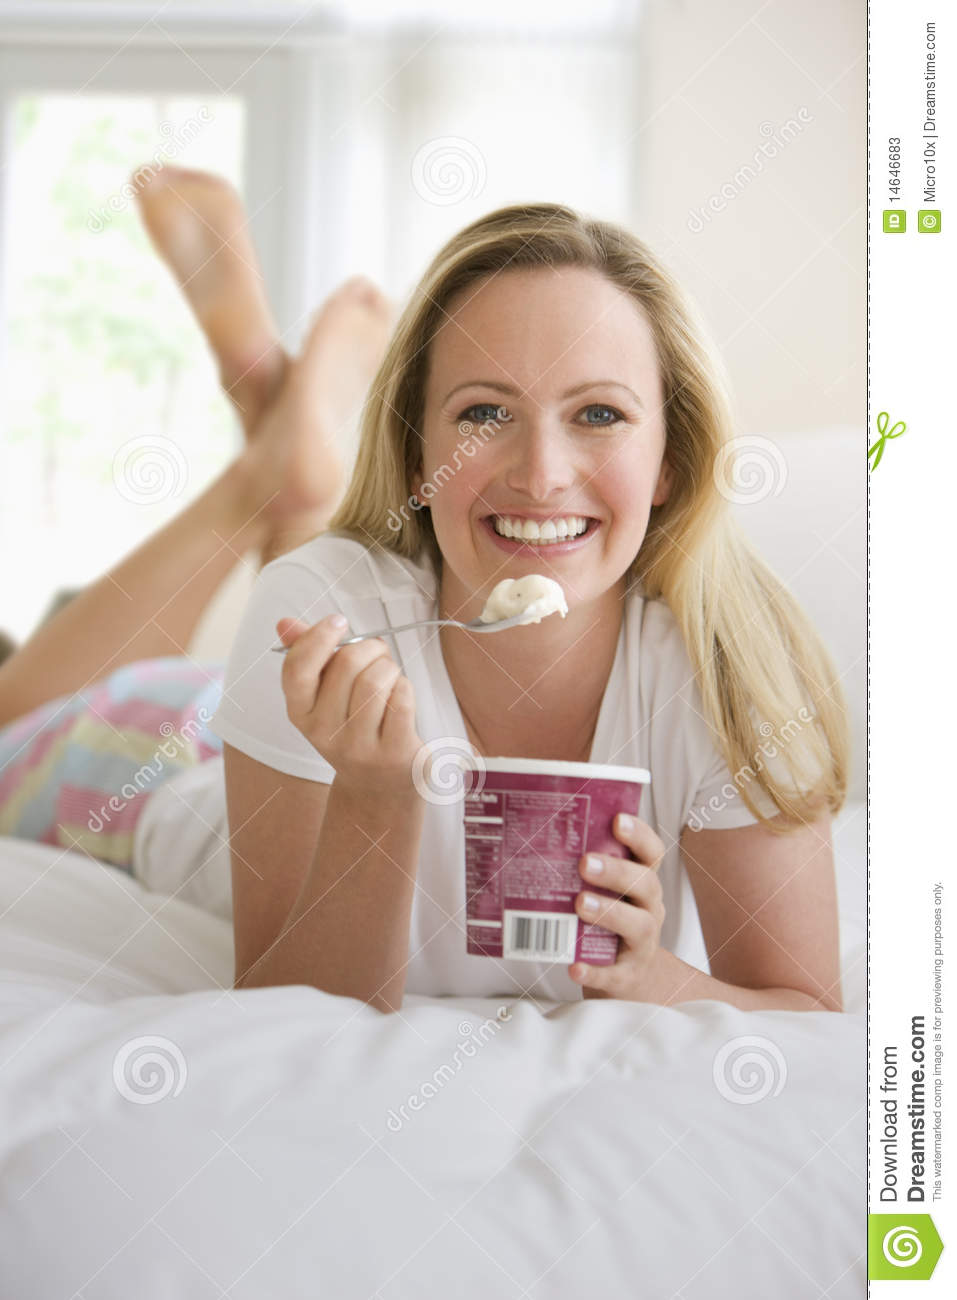 Woman Eating Ice Cream in Bed